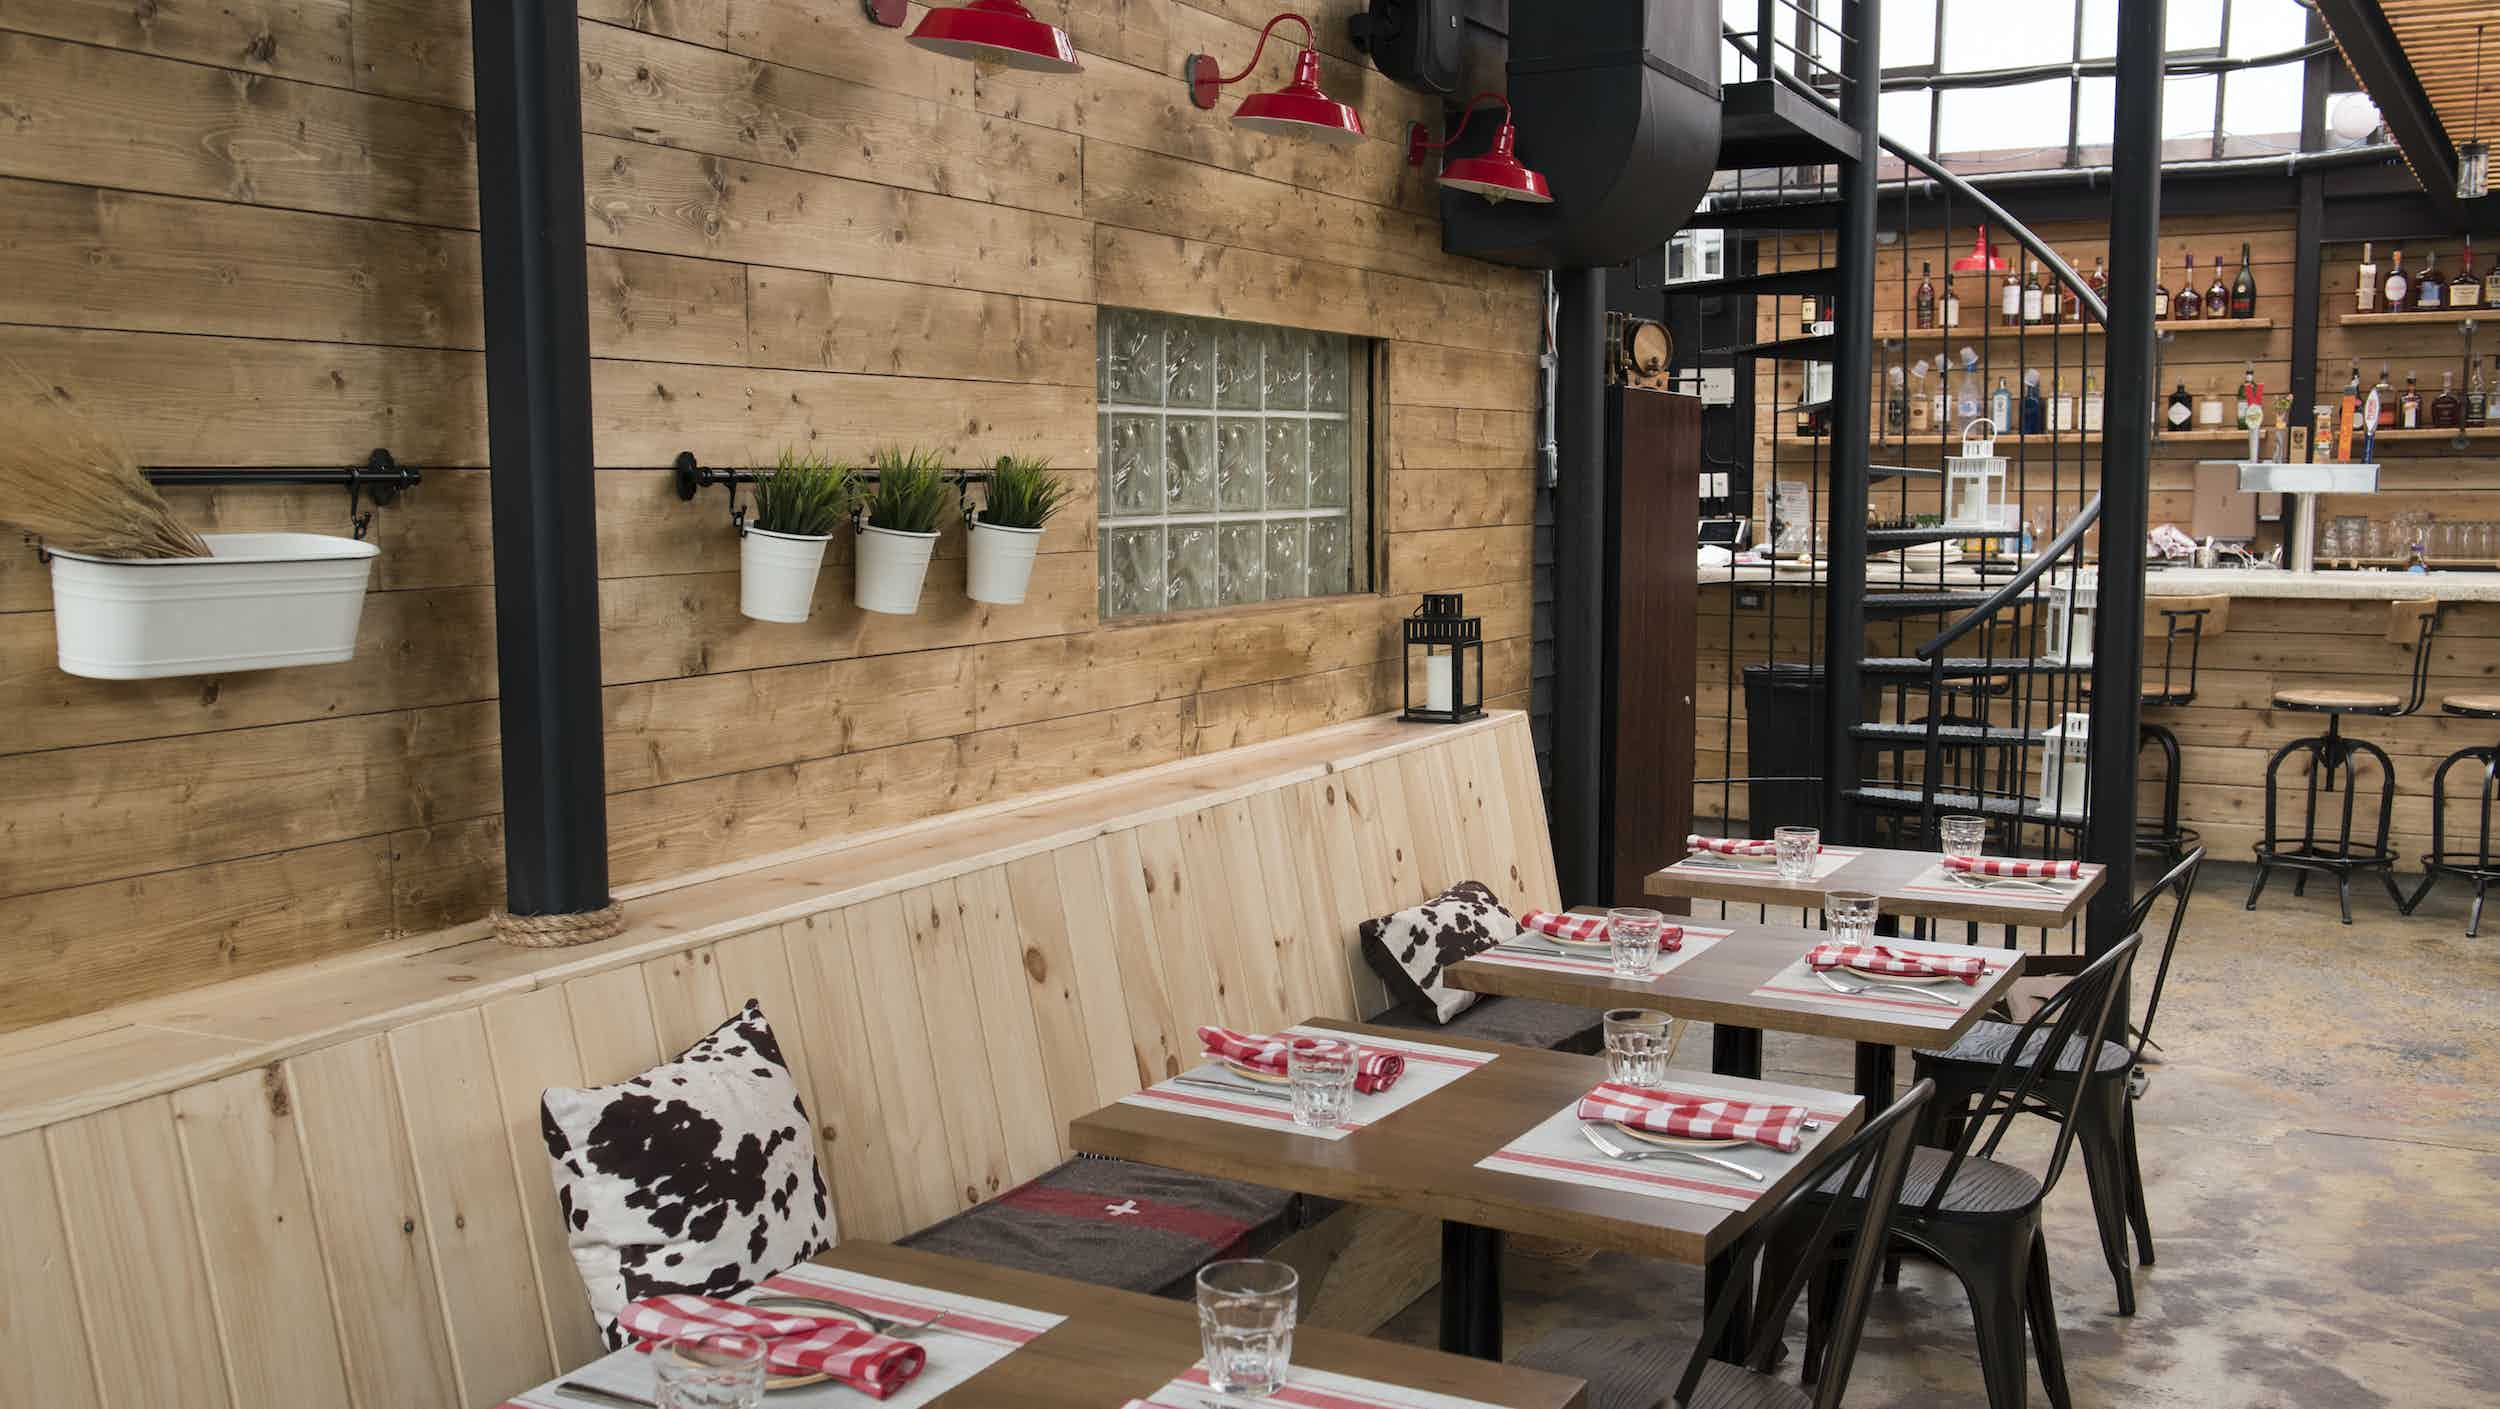 10 Unexpectedly Romantic Restaurants and Bars in DC - Zagat